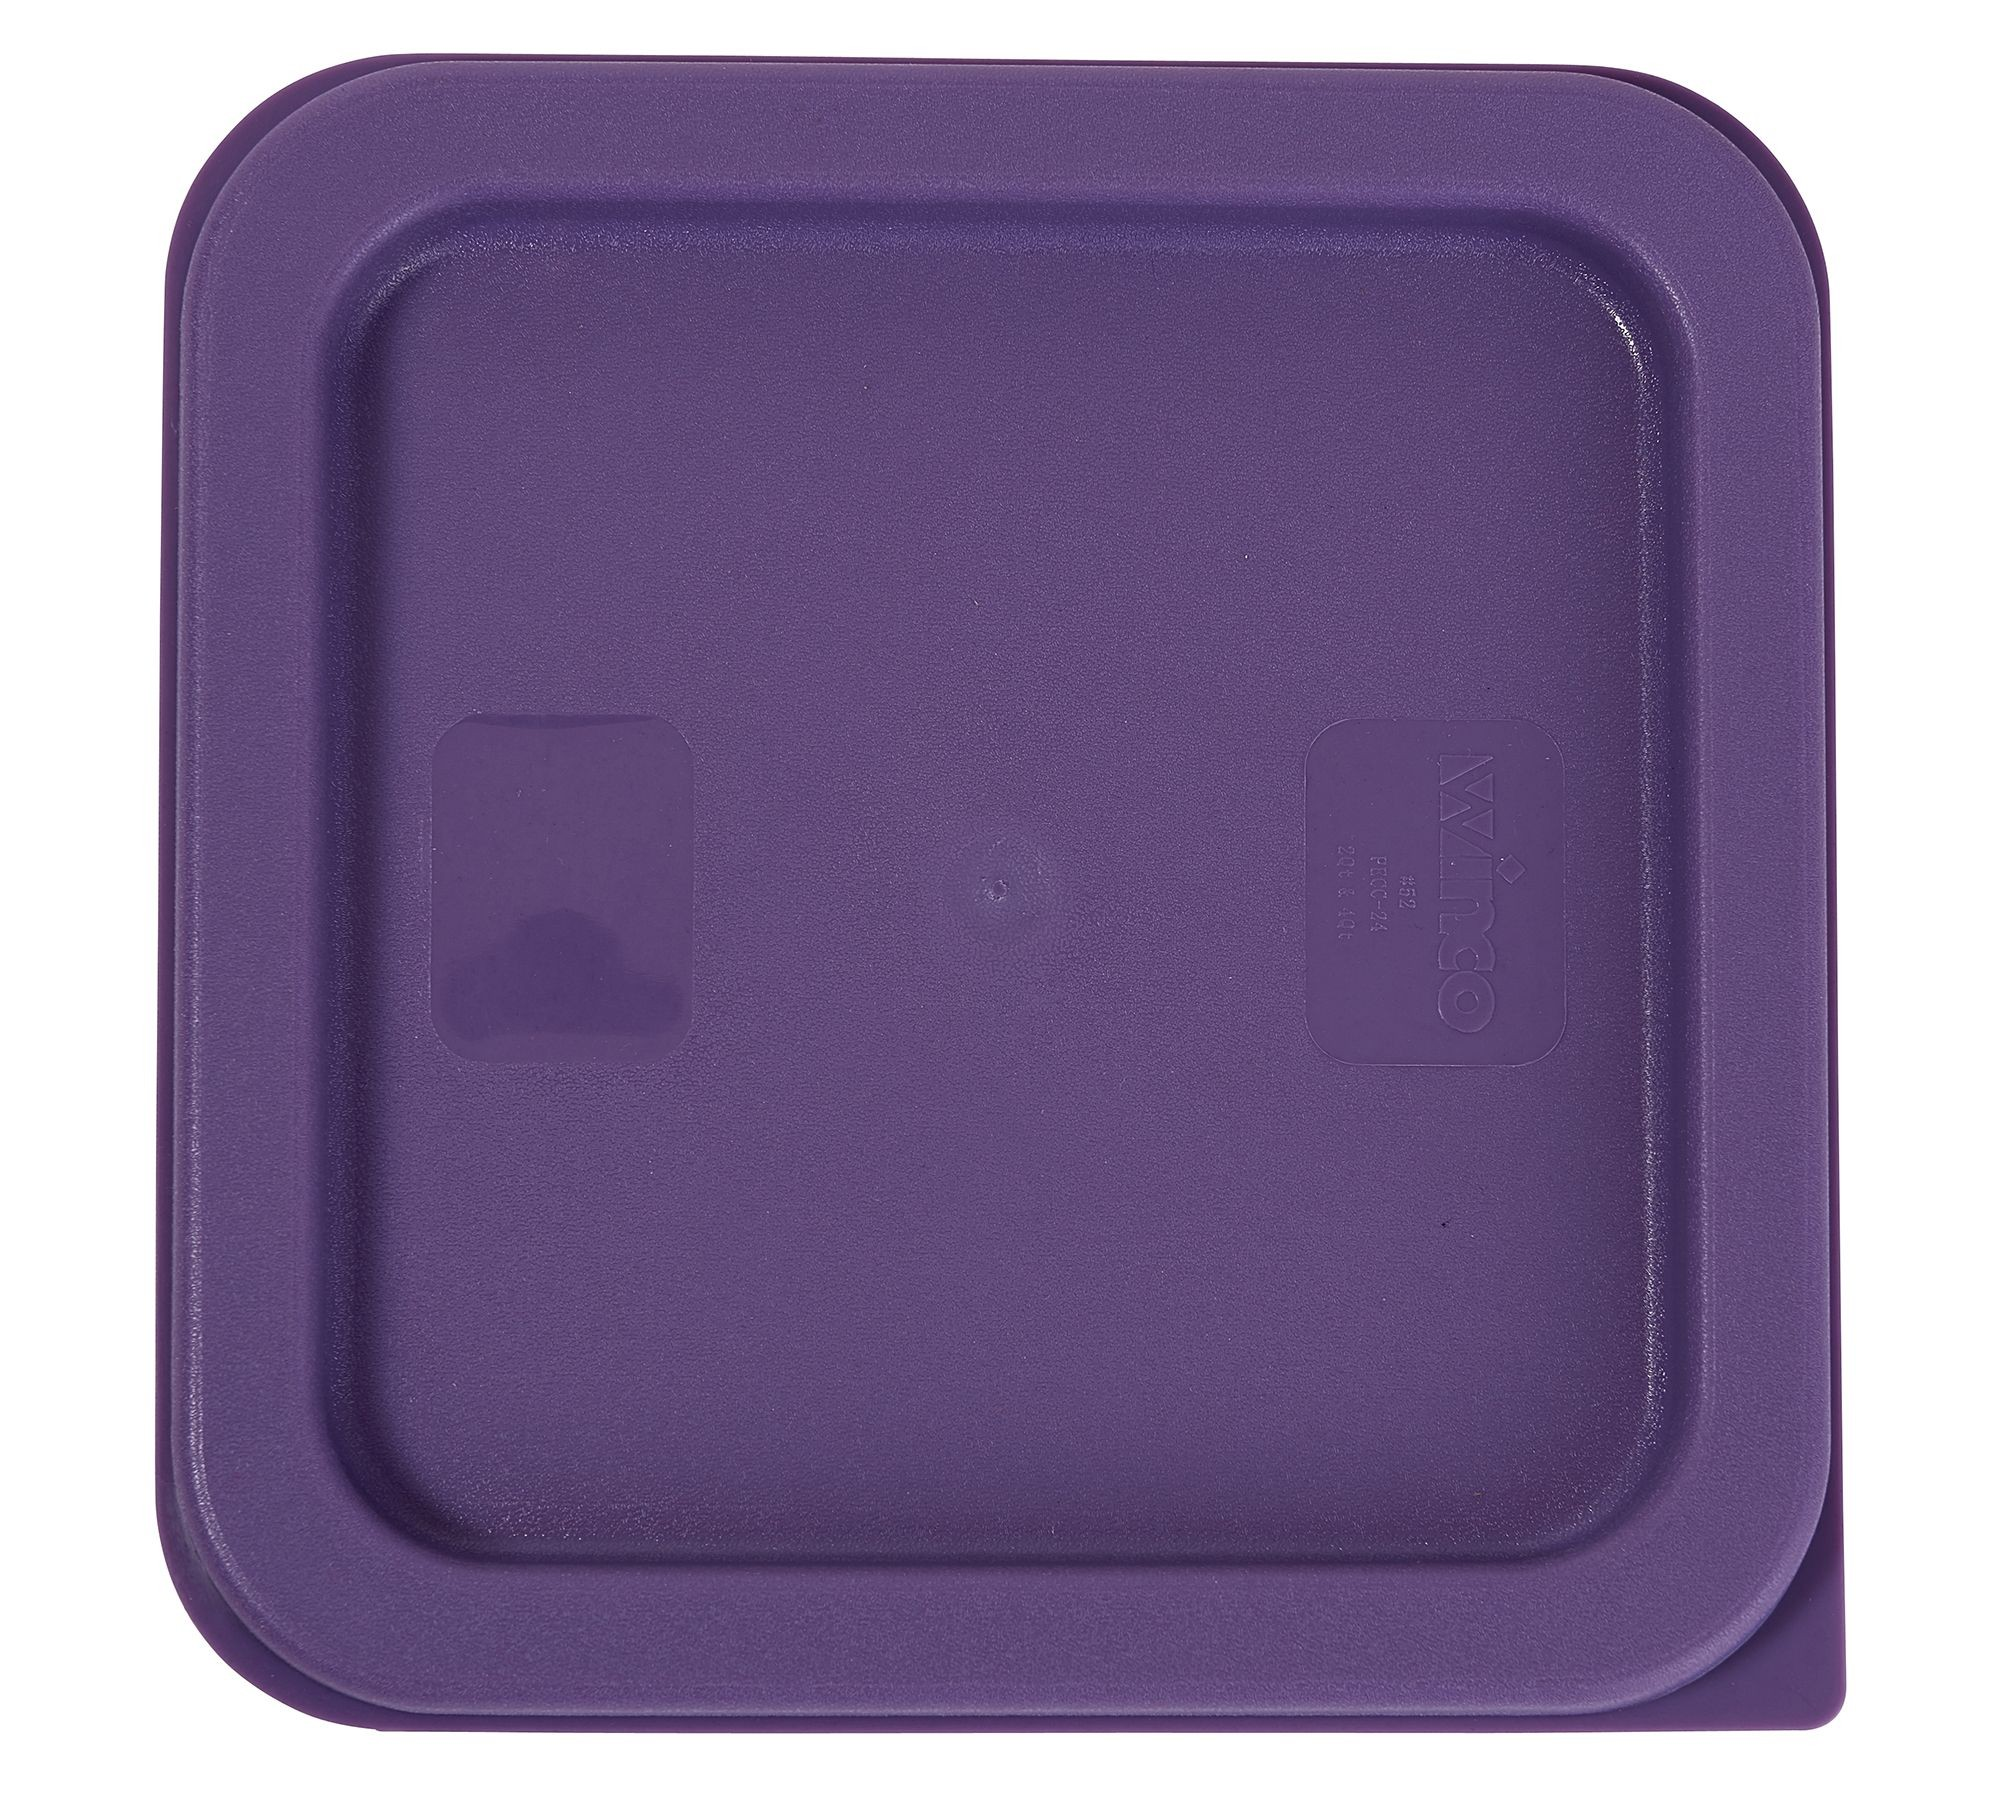 Winco PECC-24P Purple Square Cover for 2 and 4 Qt. Food Storage Containers, Allergen Free